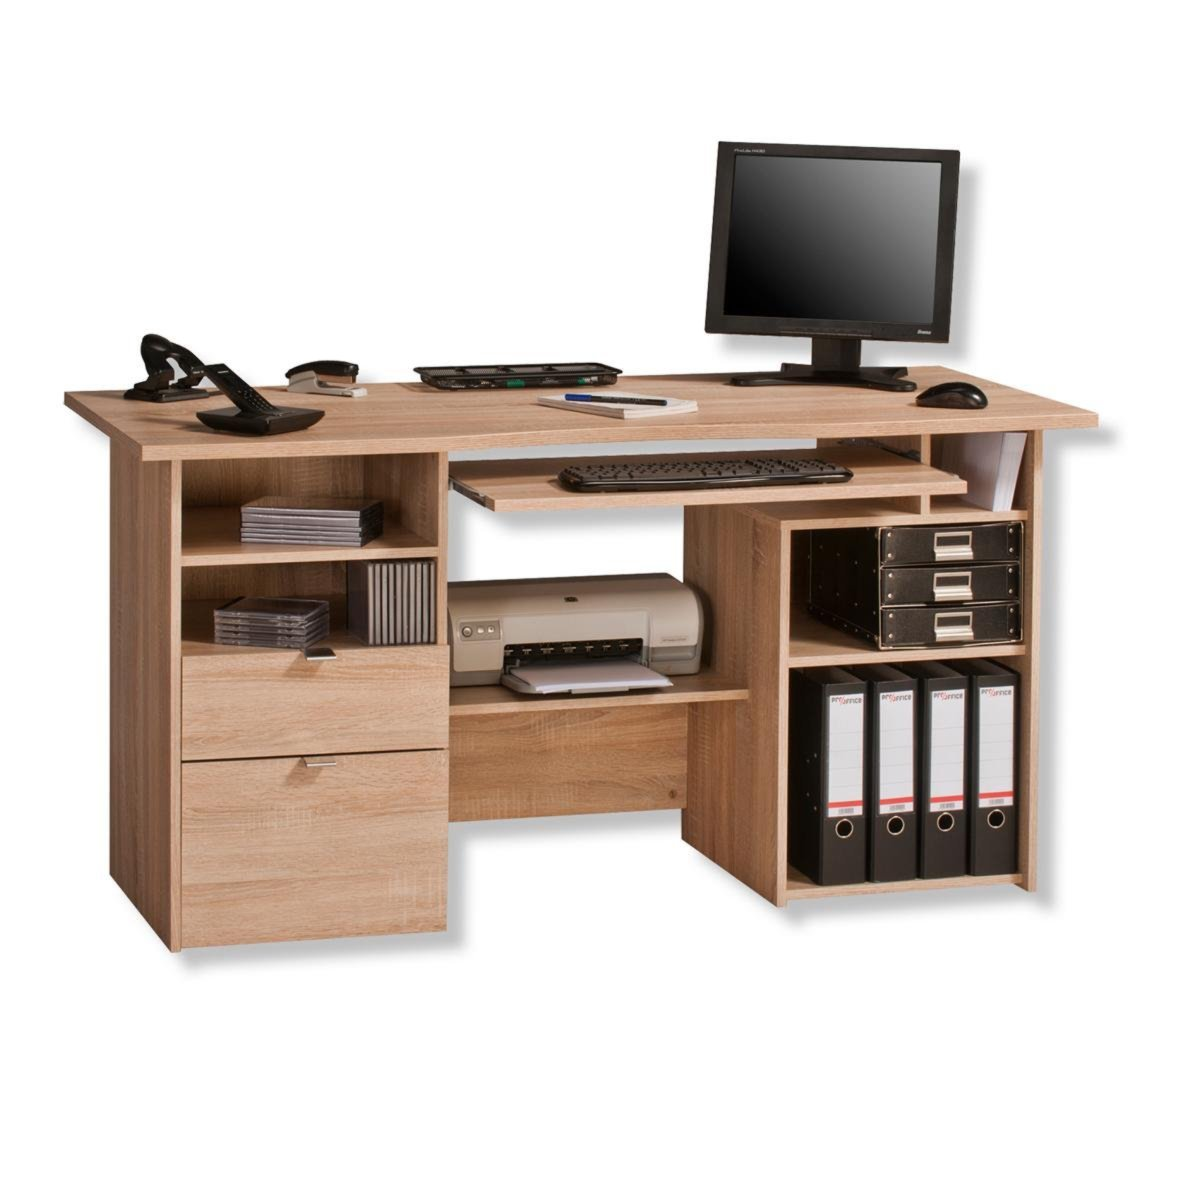 computertisch sonoma eiche 150x65 cm schreibtische m bel m belhaus roller. Black Bedroom Furniture Sets. Home Design Ideas